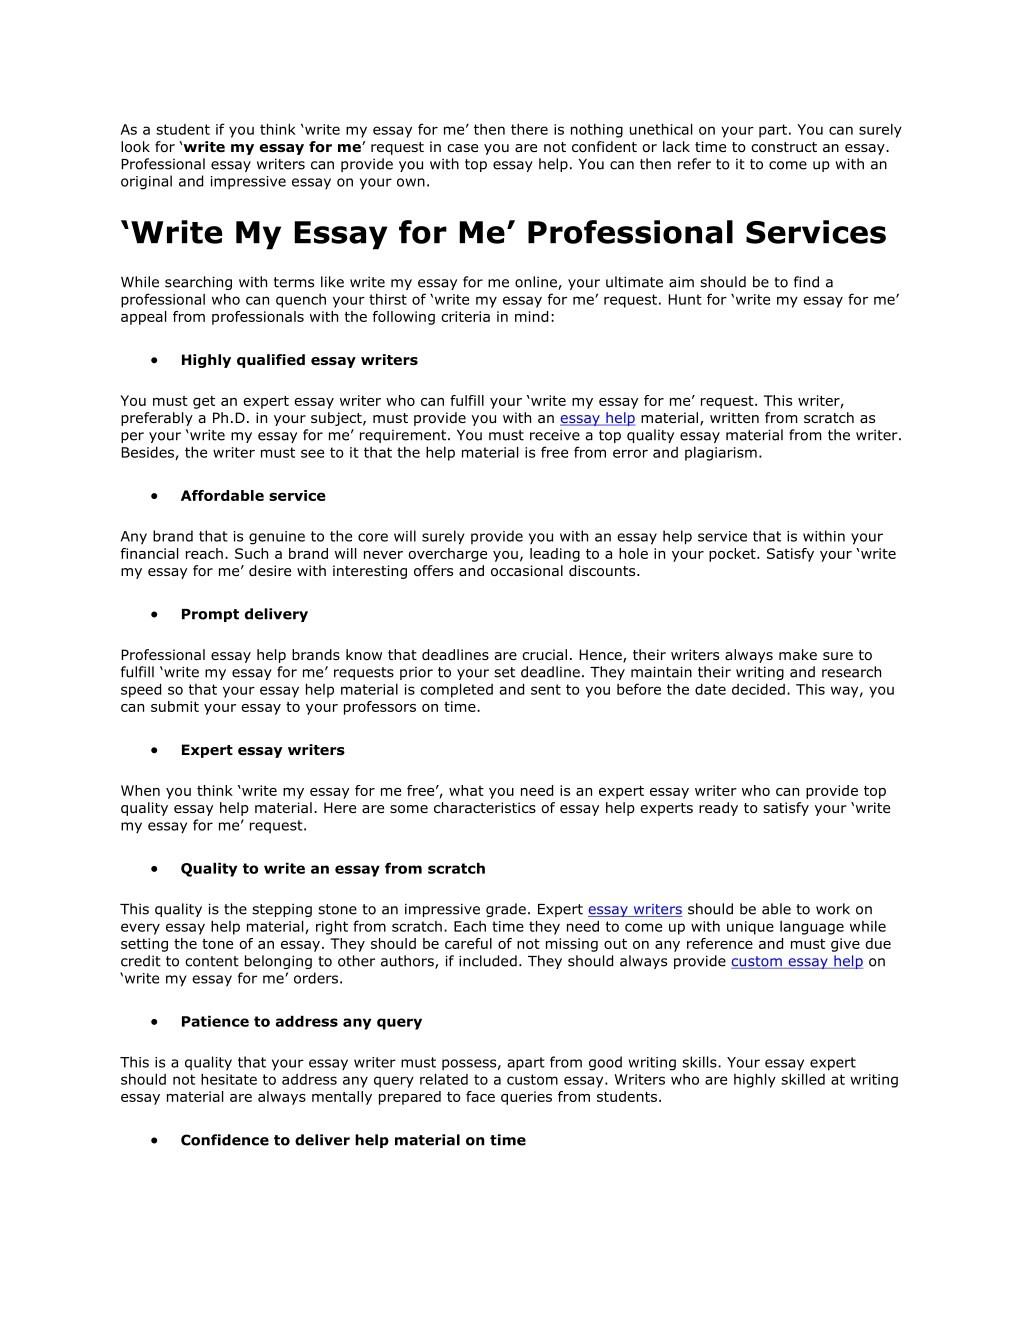 006 Essay Example Write For Me As Student If You Think My Amazing Generator Free Online Large